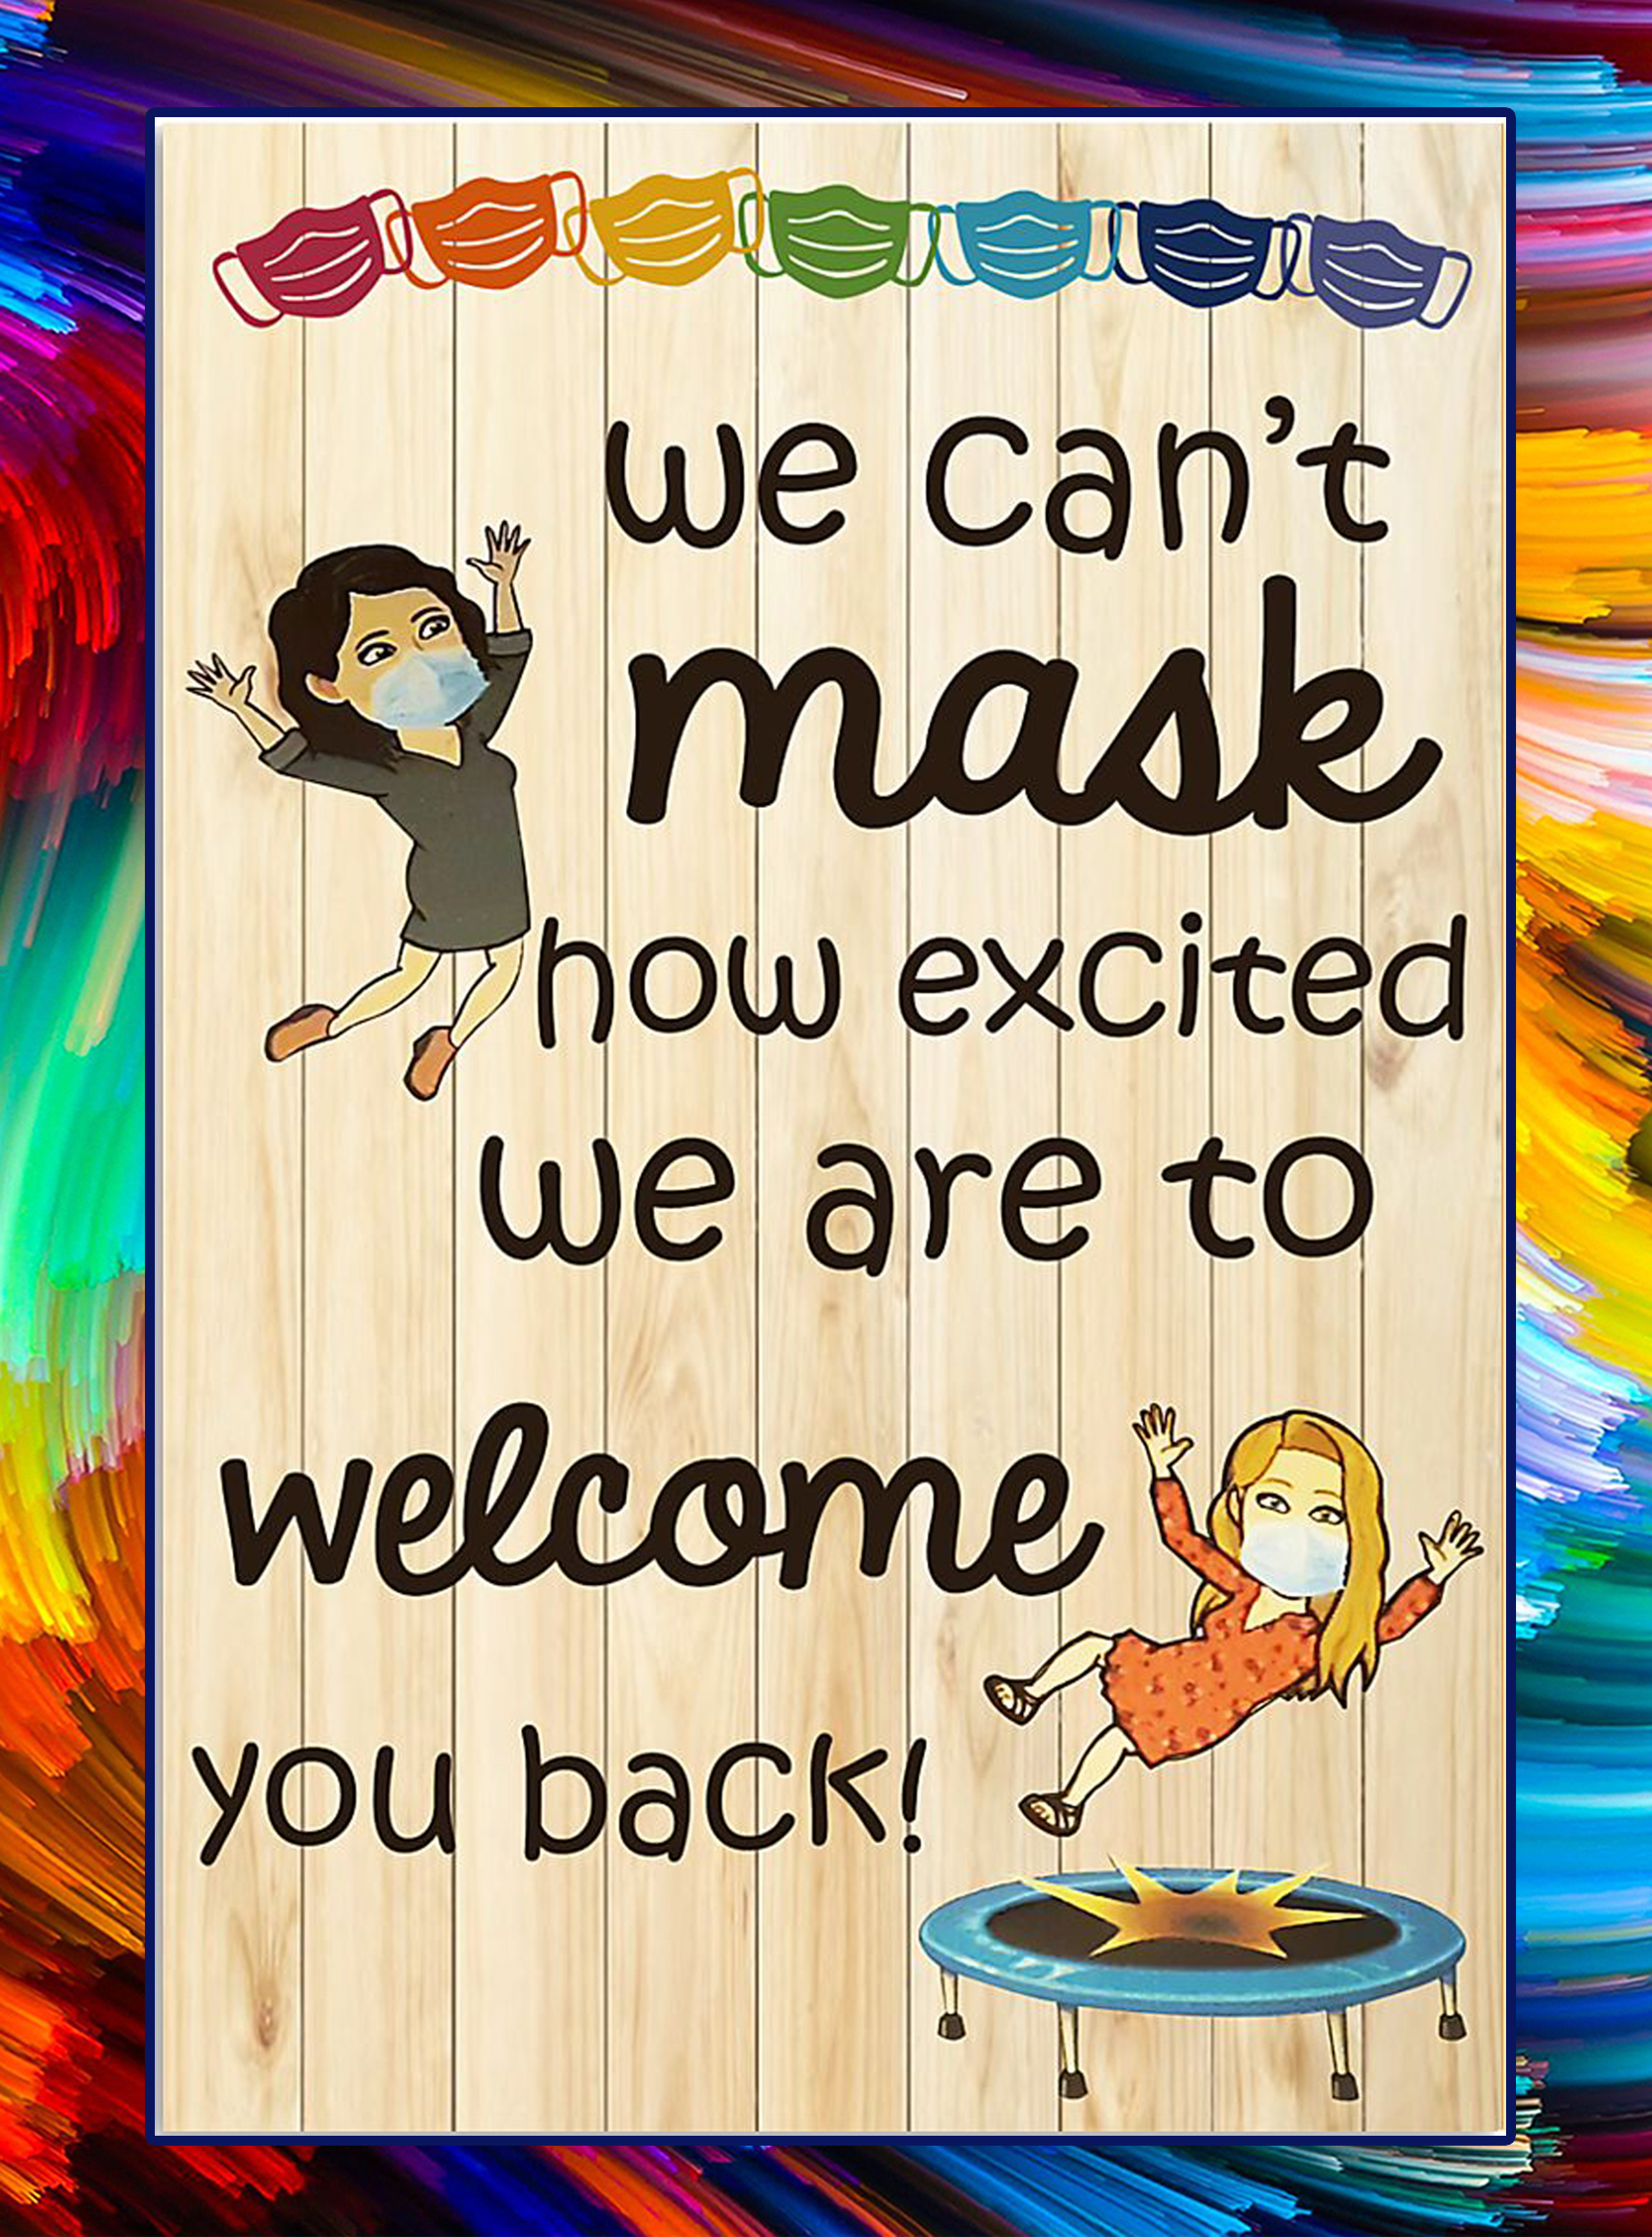 We can't mask how excited we are to welcome you back poster - A4